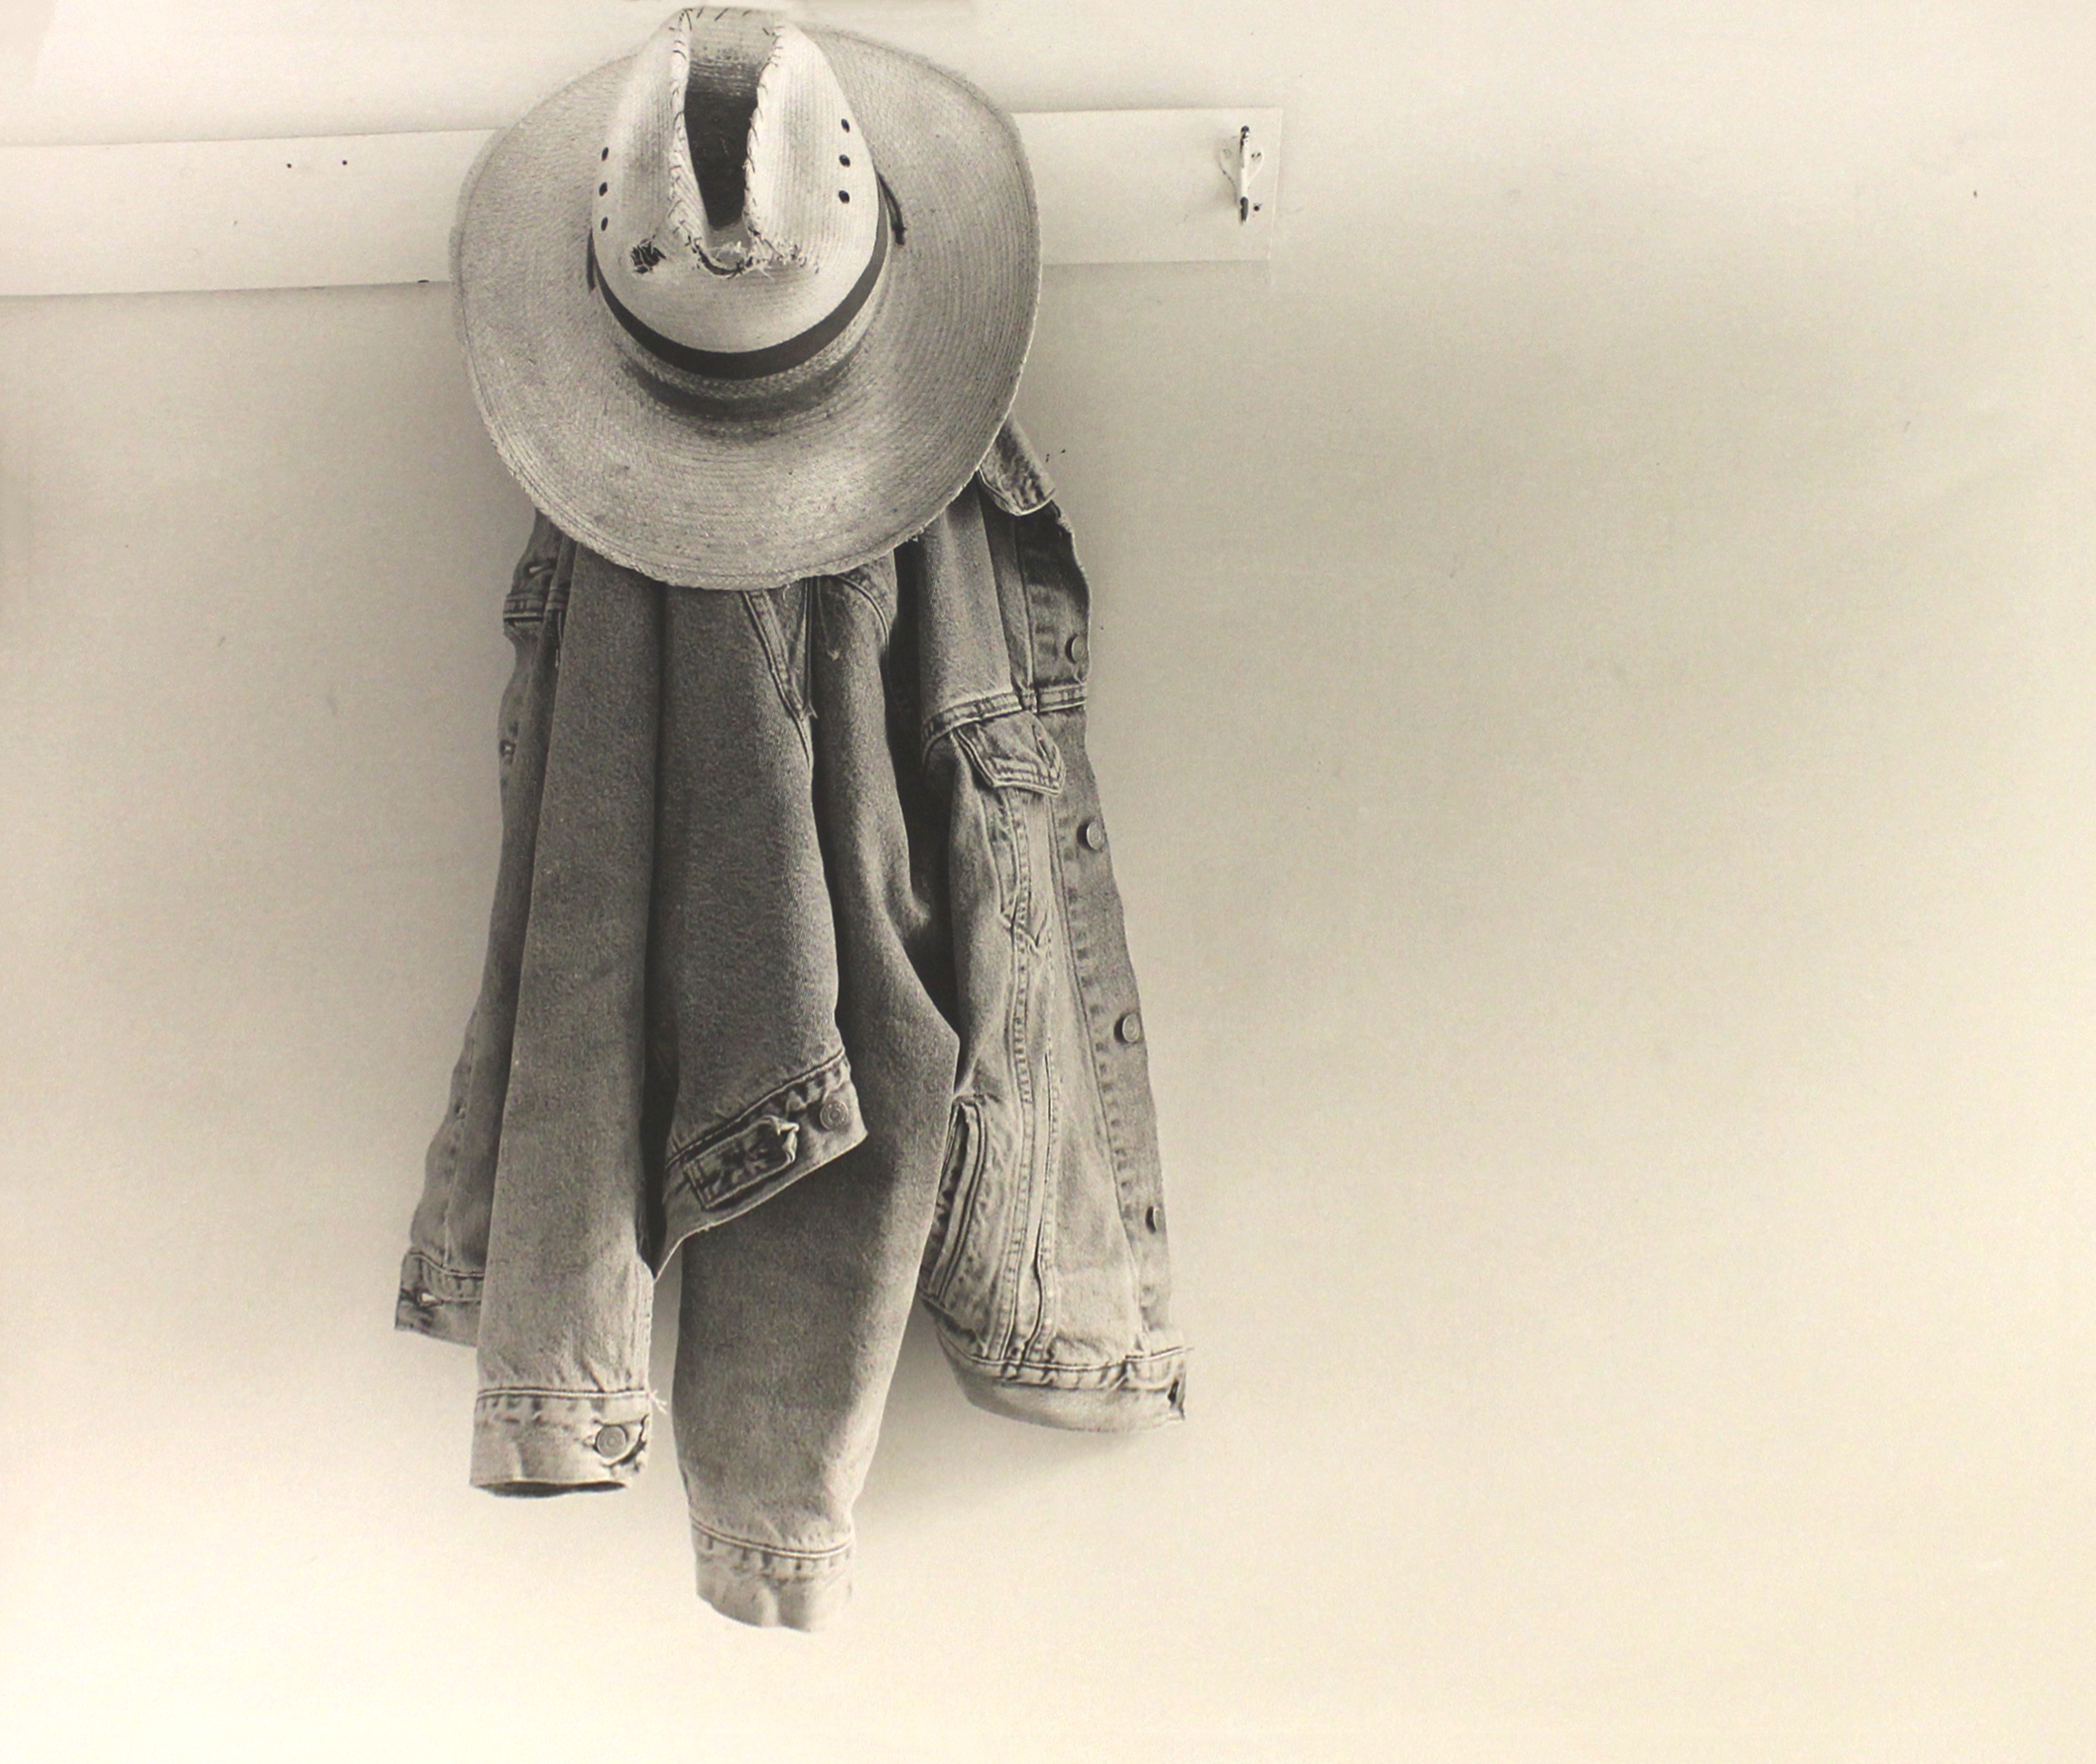 JUNE VAN CLEEF, Levi Jacket and Straw Hat on the Porch, 2001; Wood Ranch on the Highlands; Near Marfa, Presidio County, Texas, 2001